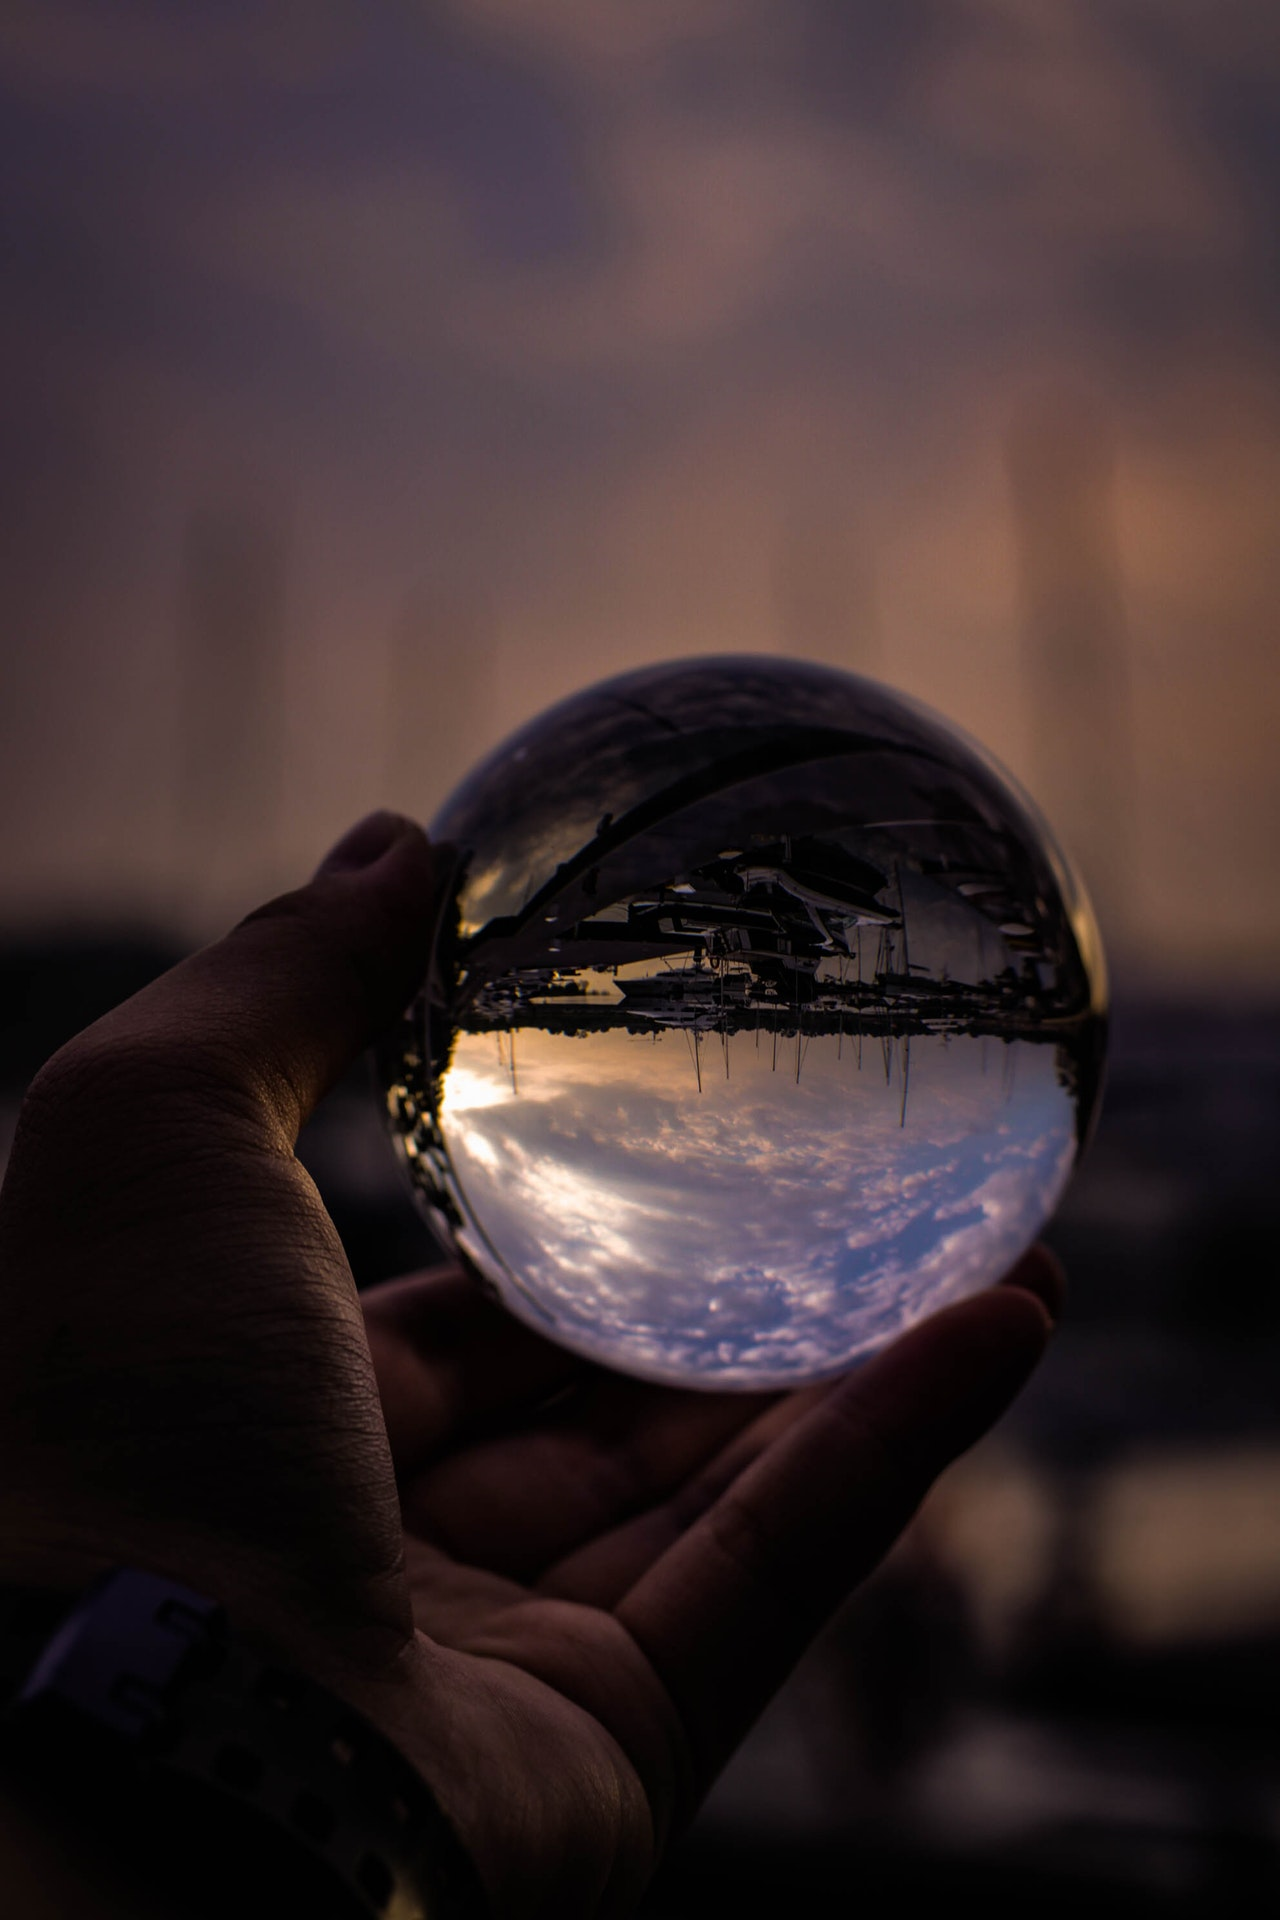 Psychic reading that works using a ball